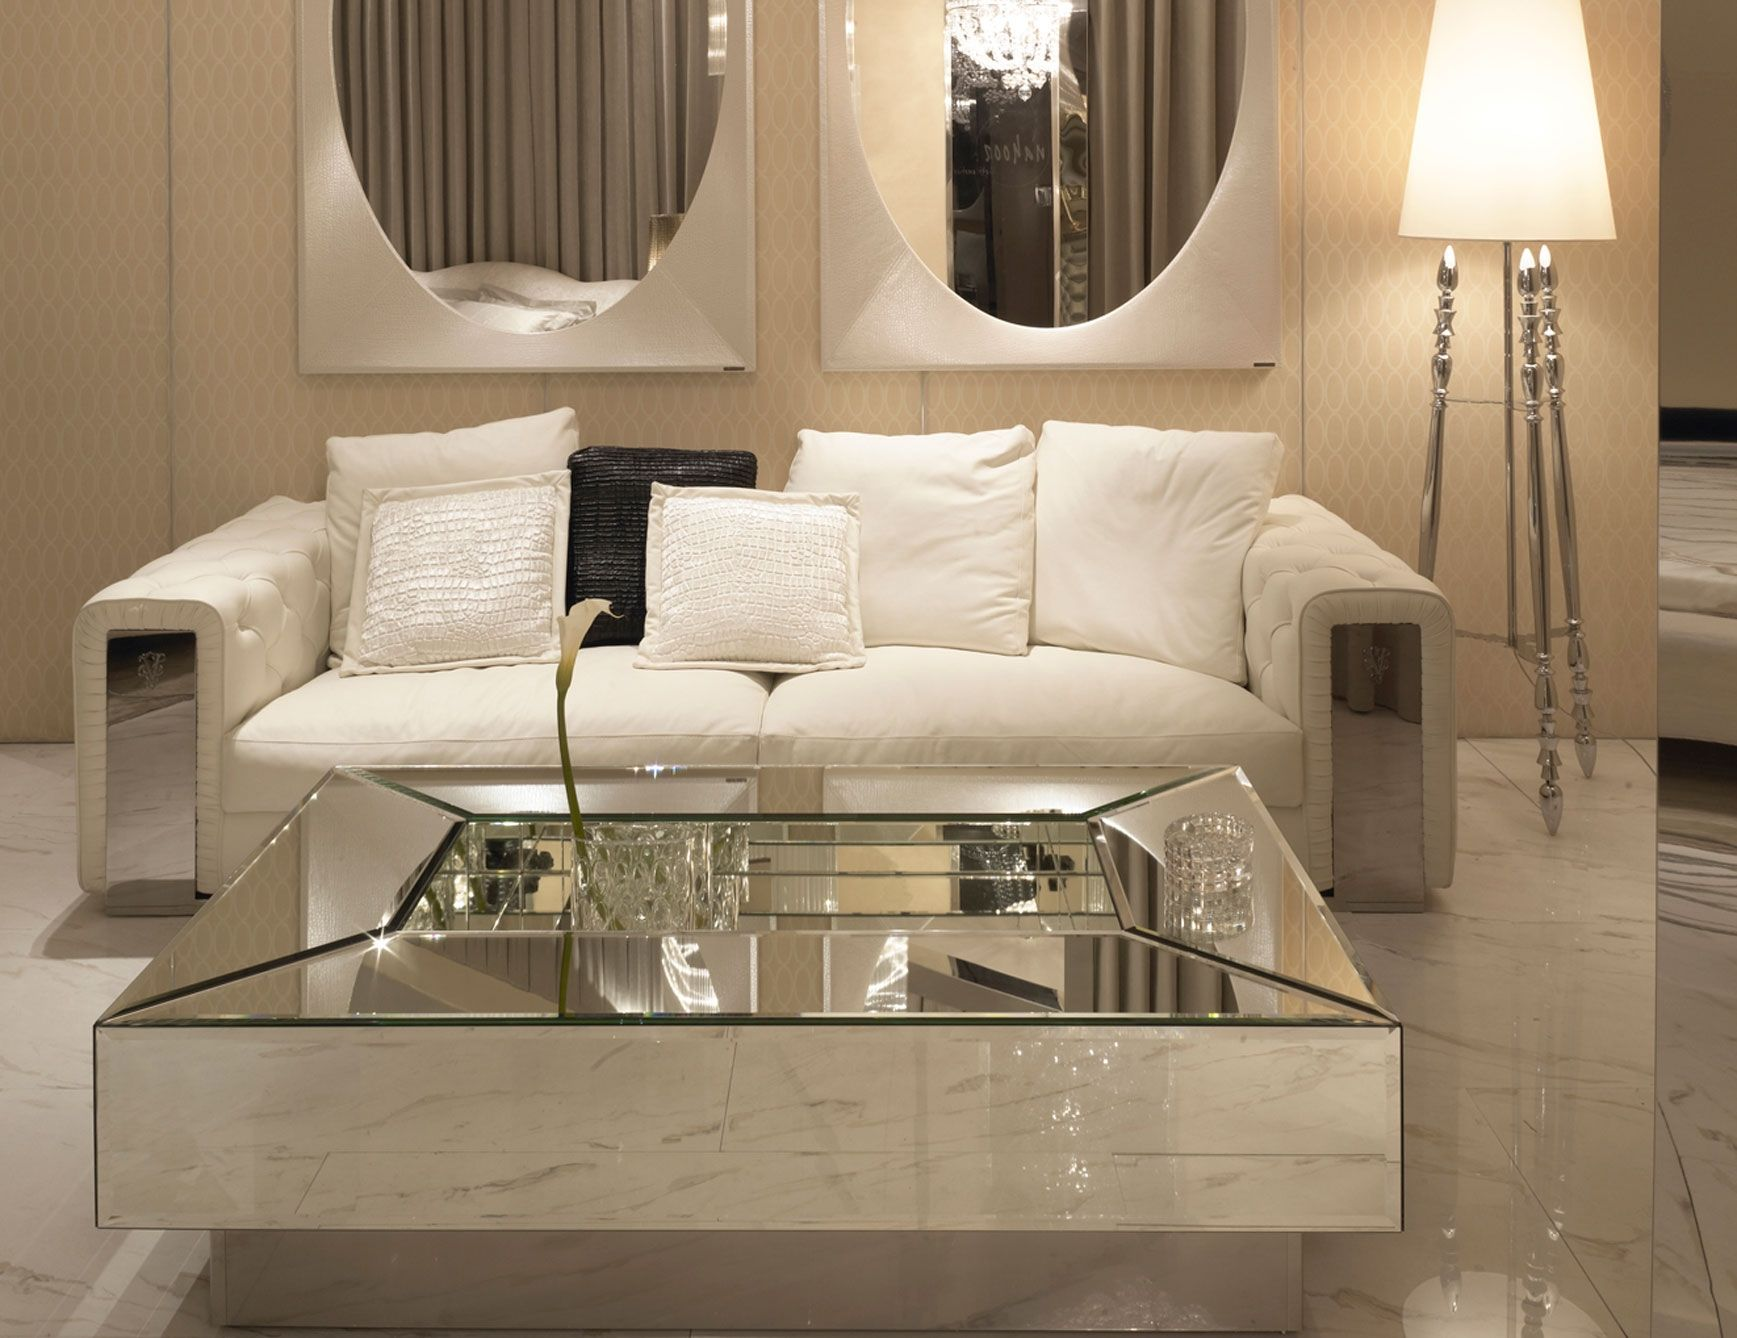 Mesmerizing Mirrored Coffee Table With Glass And Wood Combined: Furniture  Modern Minimalist Living Room Design